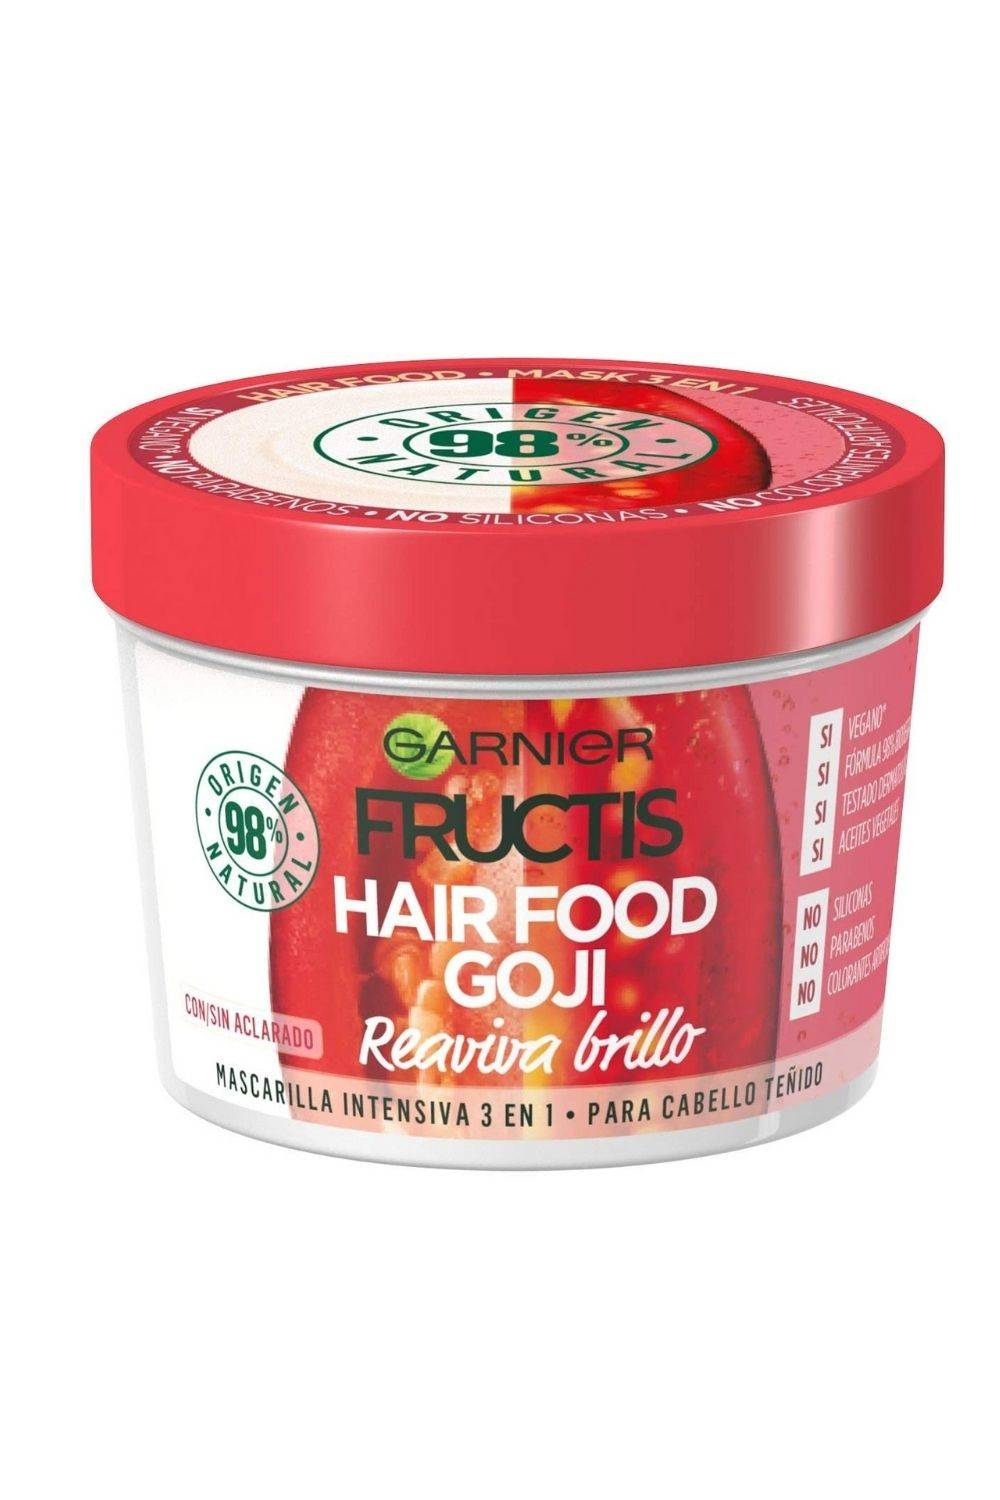 Garnier FRUCTIS HAIR FOOD goji mascarilla reaviva brillo